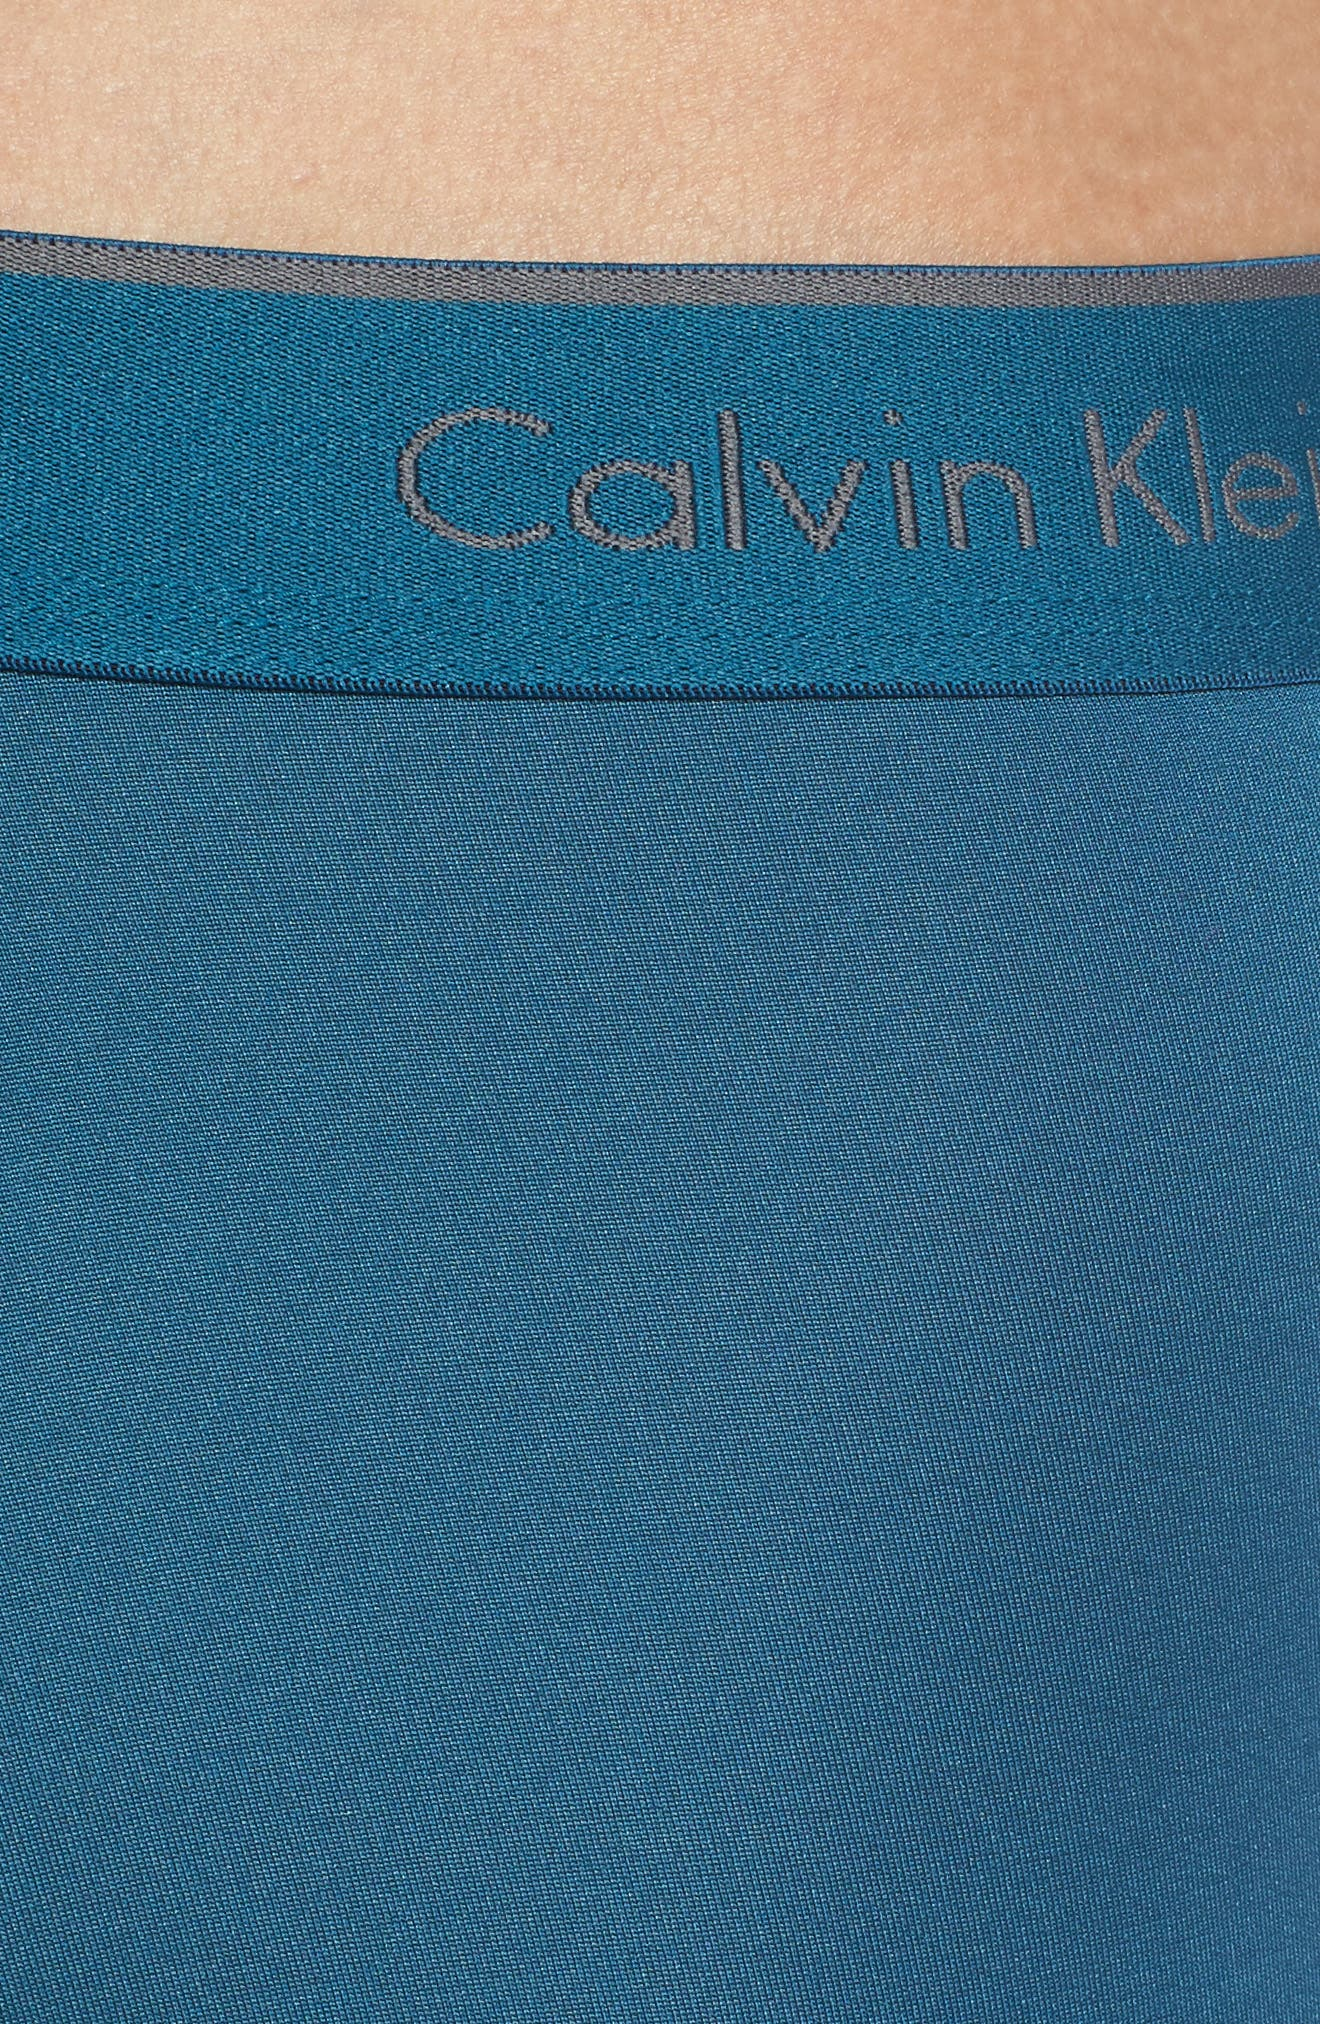 CALVIN KLEIN, 3-Pack Micro Stretch Boxer Briefs, Alternate thumbnail 5, color, IRON GATE/ BLUE/ TOURNEY